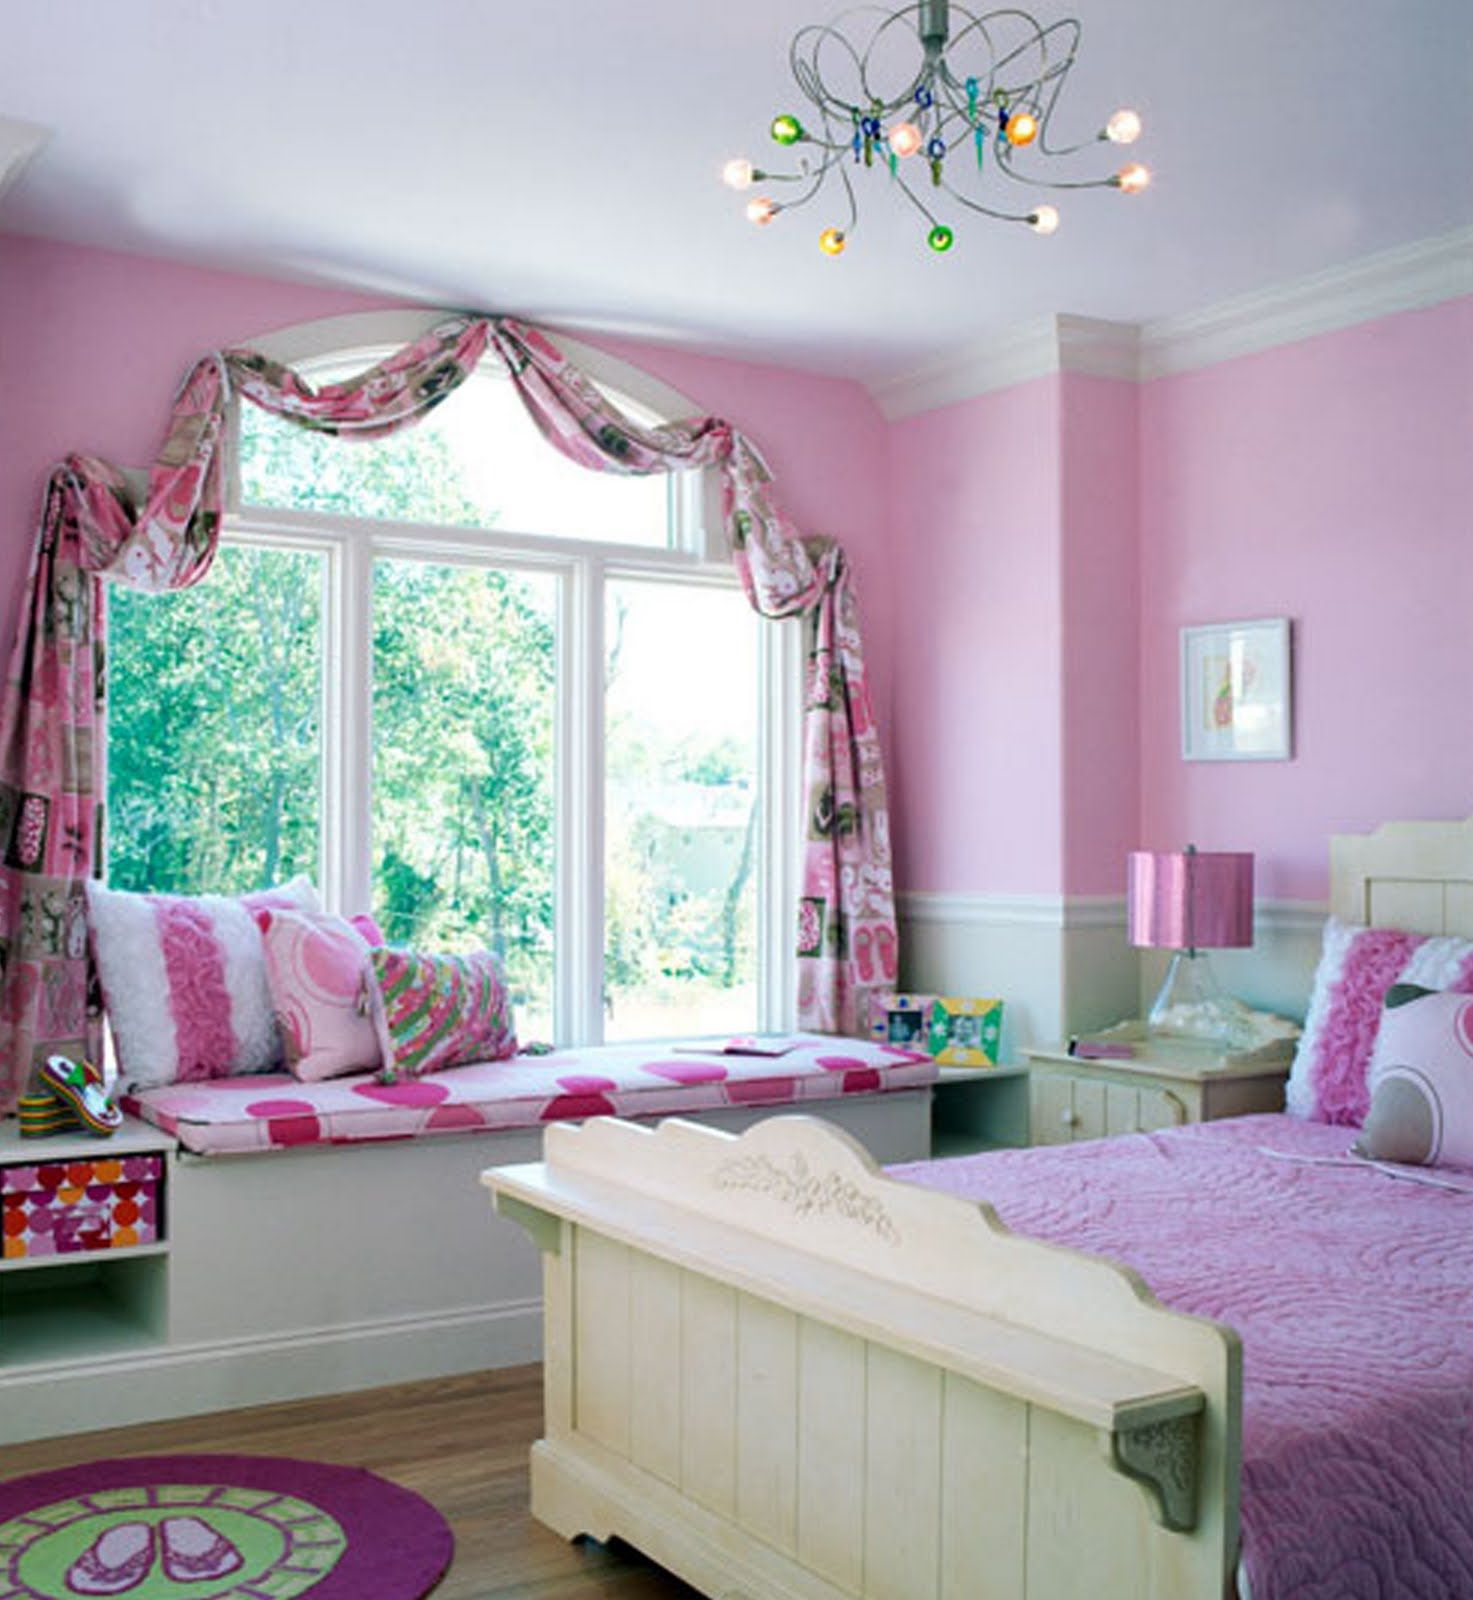 Bedroom For Teenage Girls Themes charming pink and white themes design room for teenage girls with